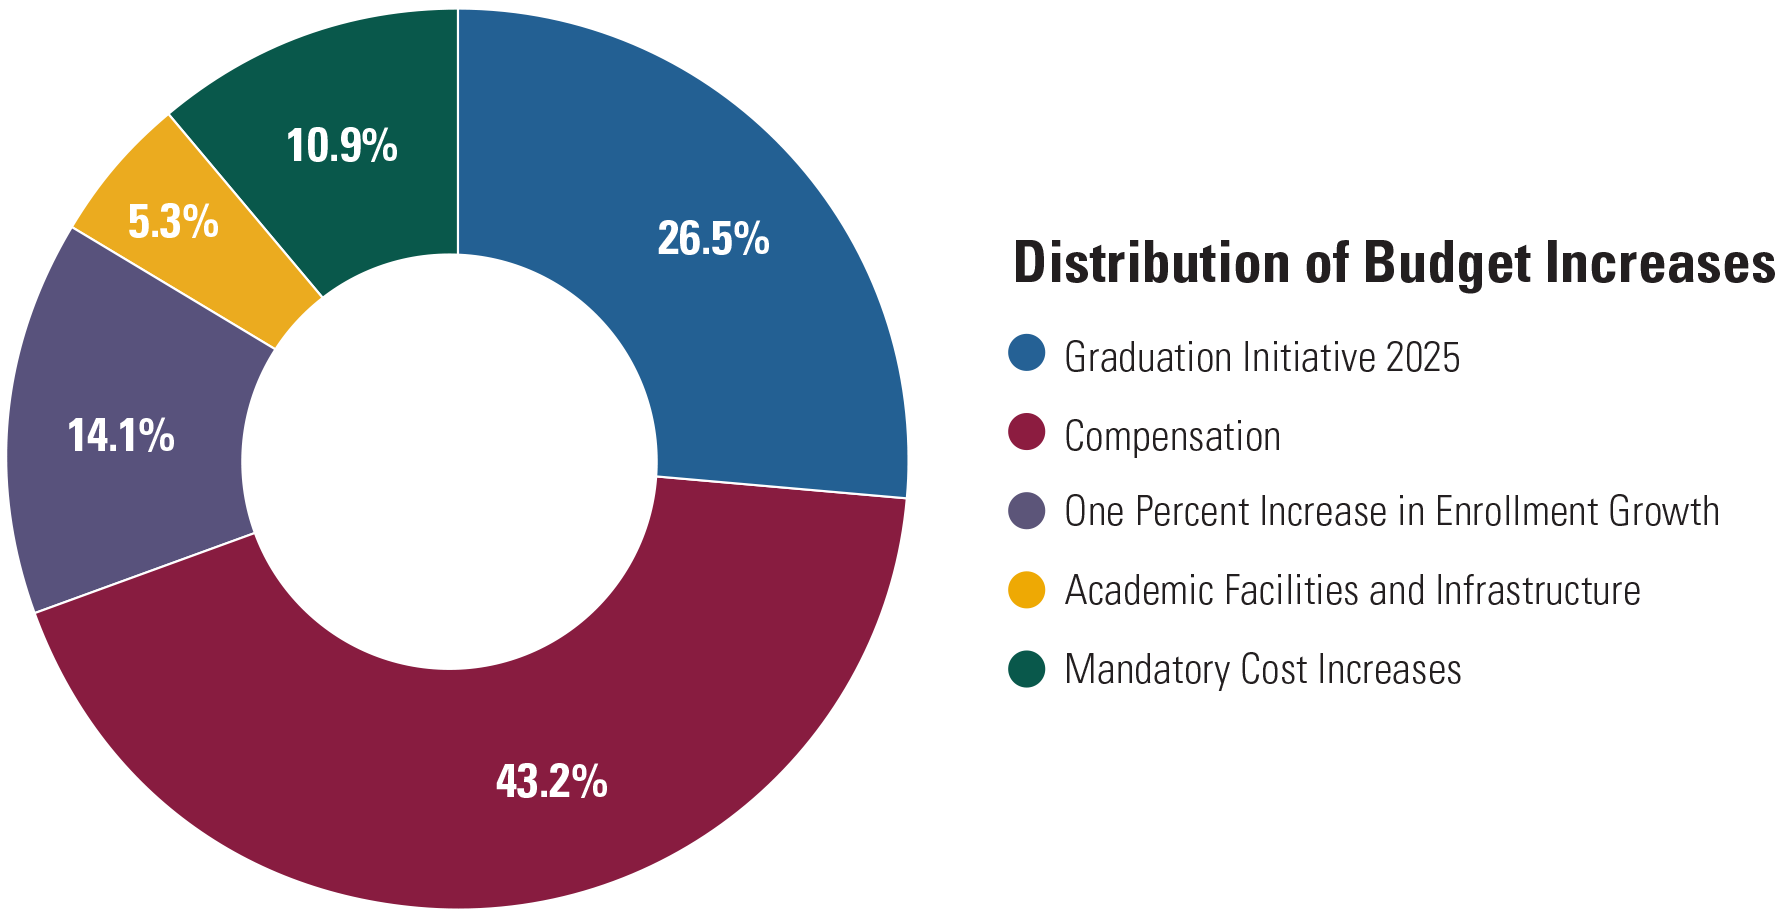 distribution-of-budget-increases.png